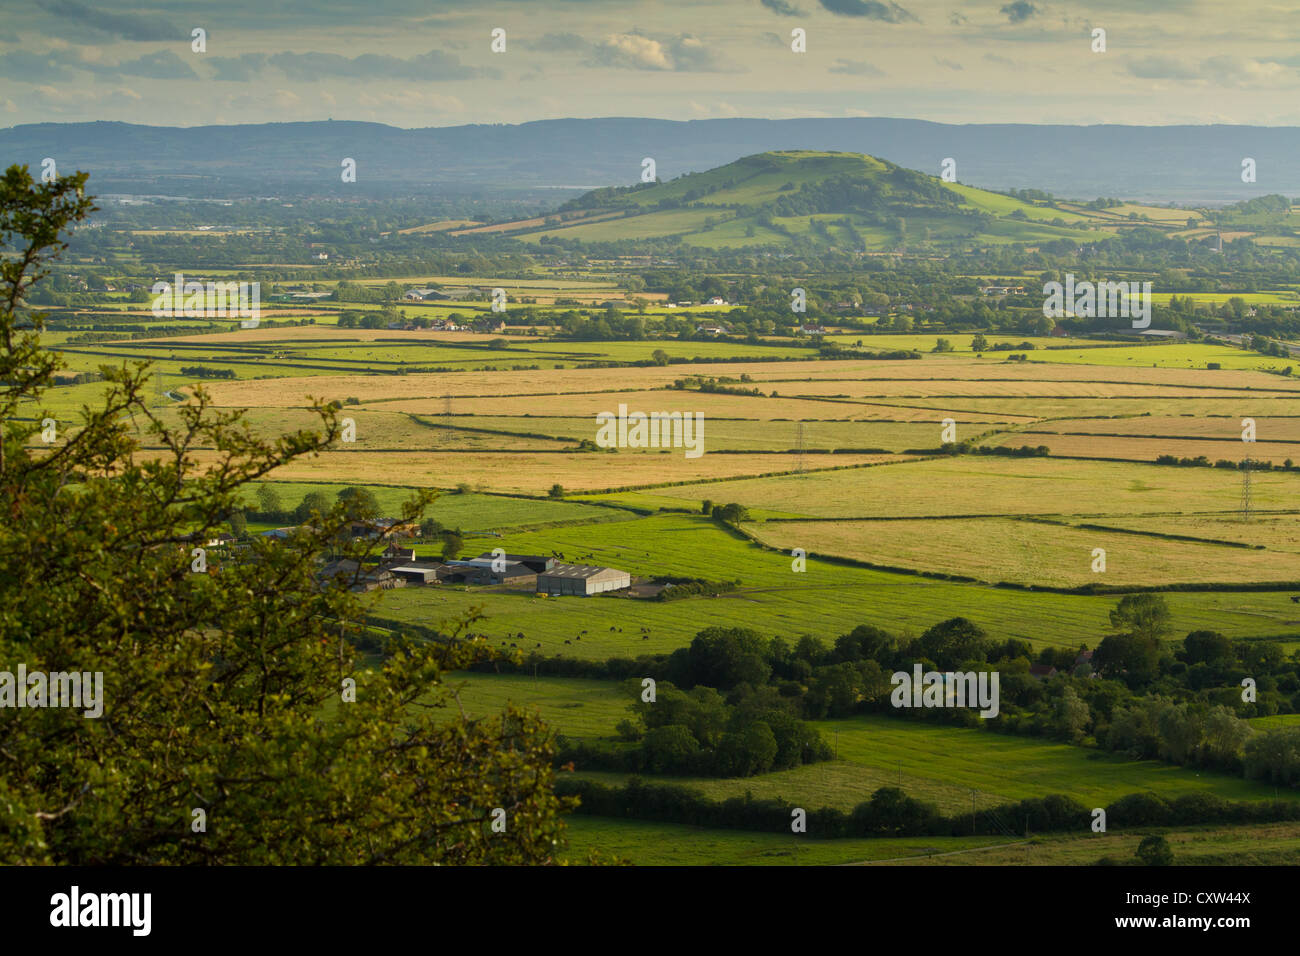 View from Crook Peak towards Brent Knoll in Somerset, part of the Wessex Walk - Stock Image